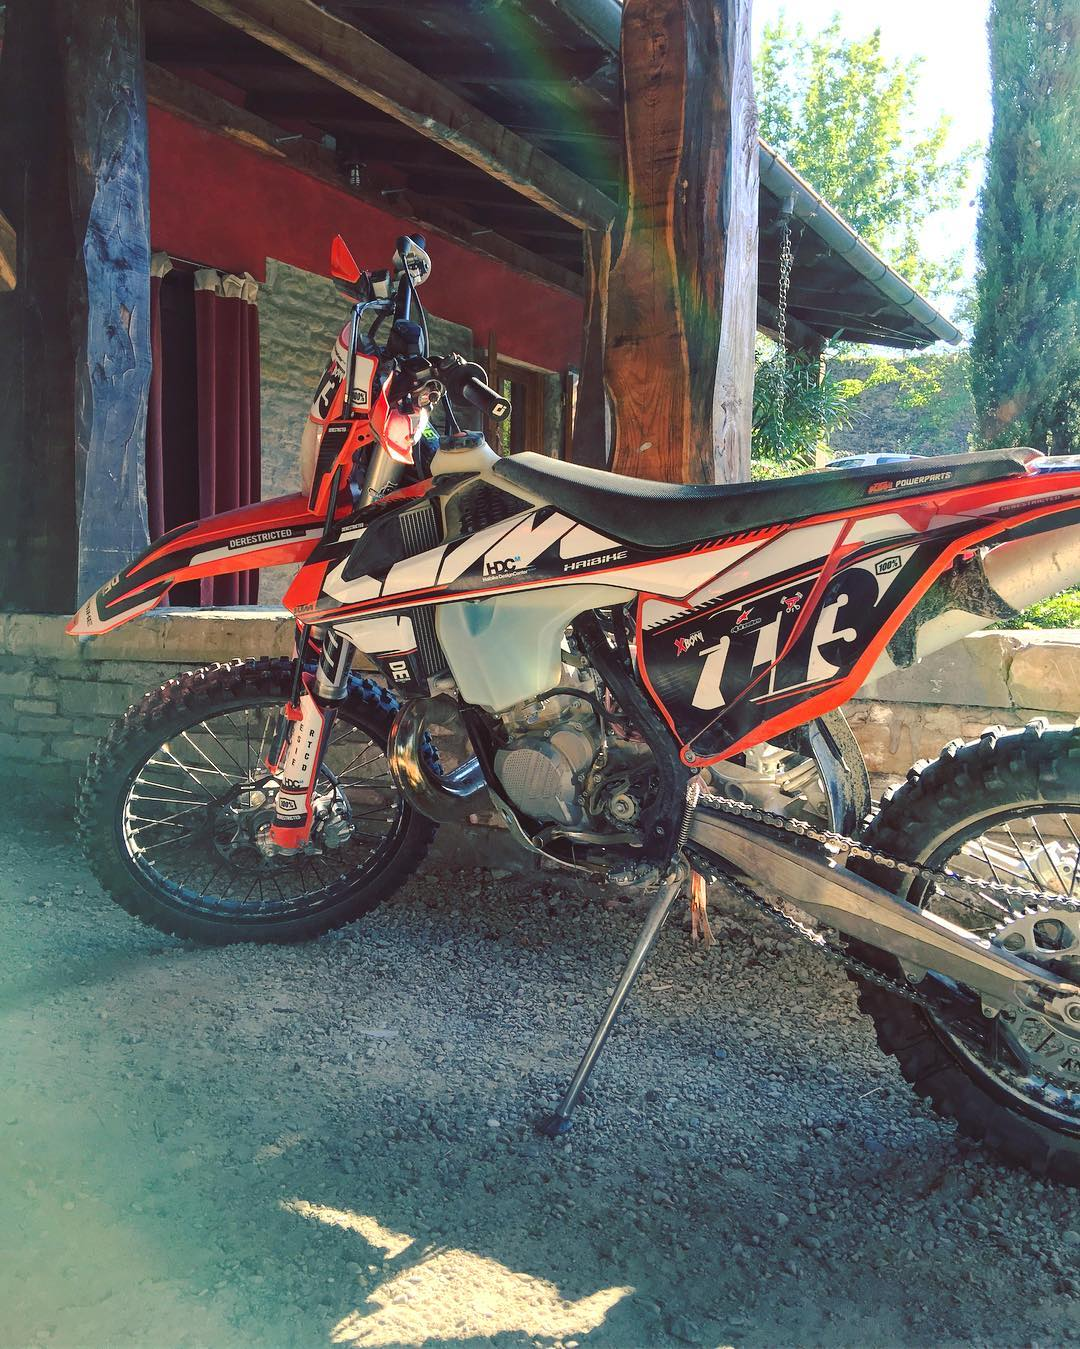 Hands down the best Enduro bike we have ever ridden. #KTM #300exc #enduro #ride100percent